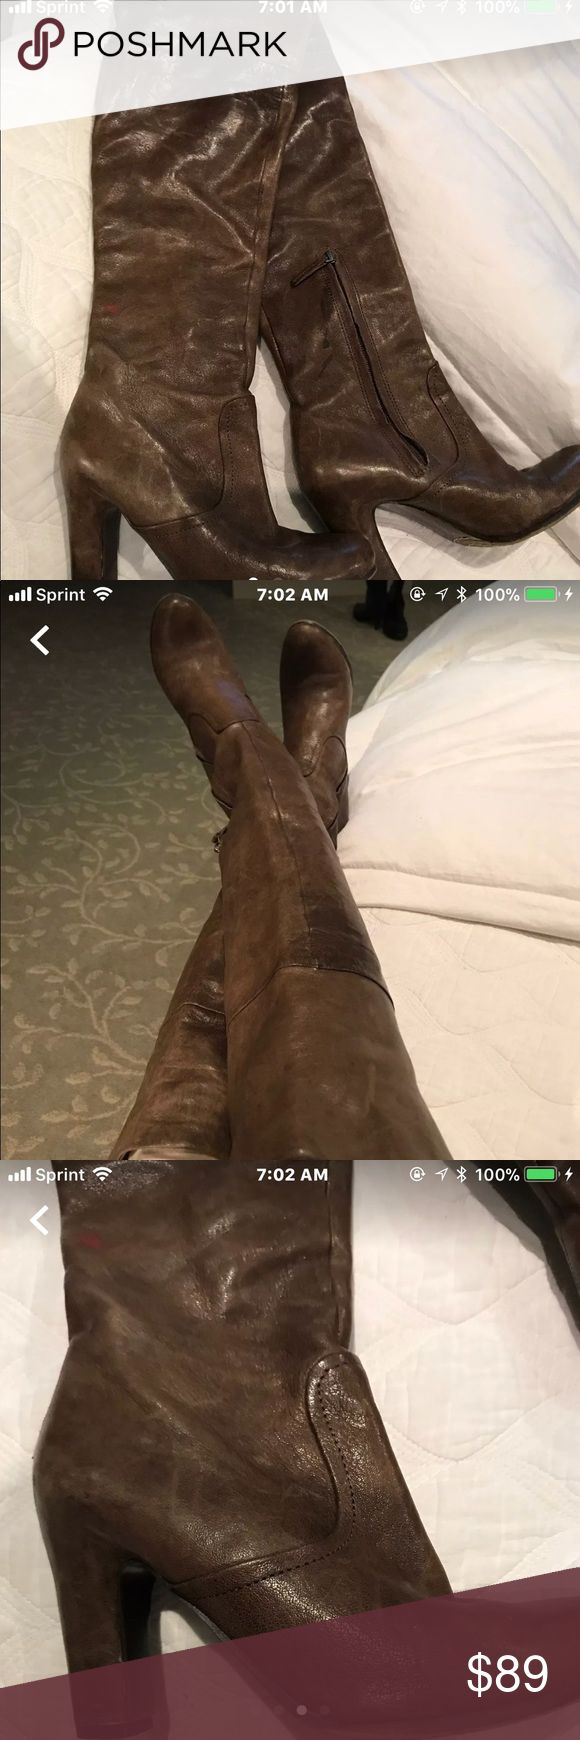 Sam Edelman over the knee boots Olive green/brown shade super soft real leather boots size 5.5 , side zipper at ankle area, can be rolled down , still in great shape Sam Edelman Shoes Over the Knee Boots